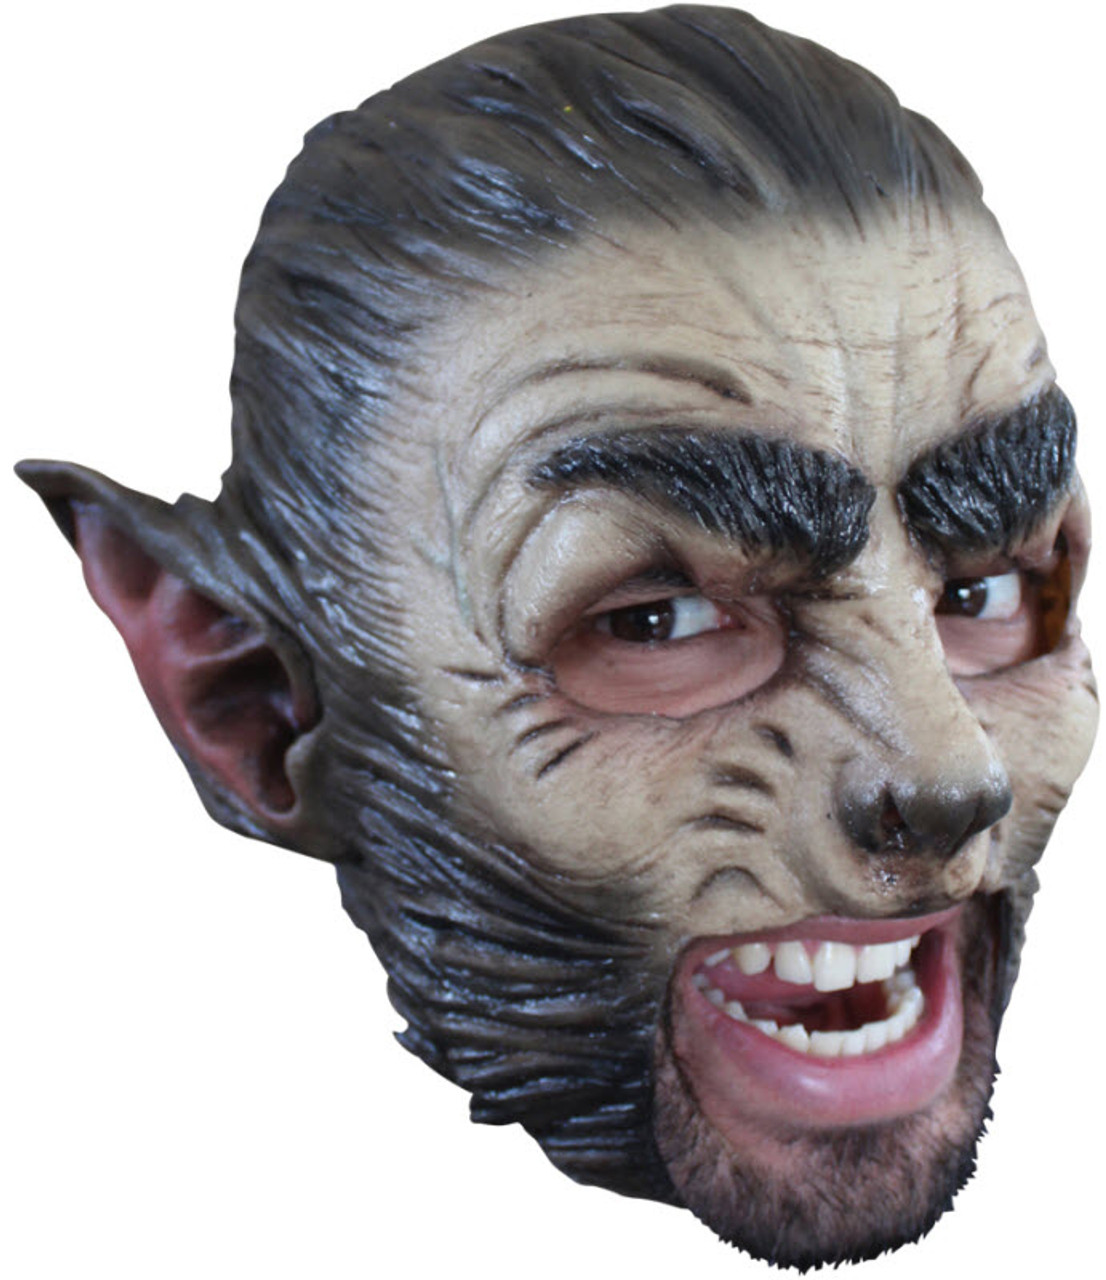 BLOODY WOLFMAN FITTED MASK WITH FUR HALLOWEEN HORROR WEREWOLF FANCY DRESS